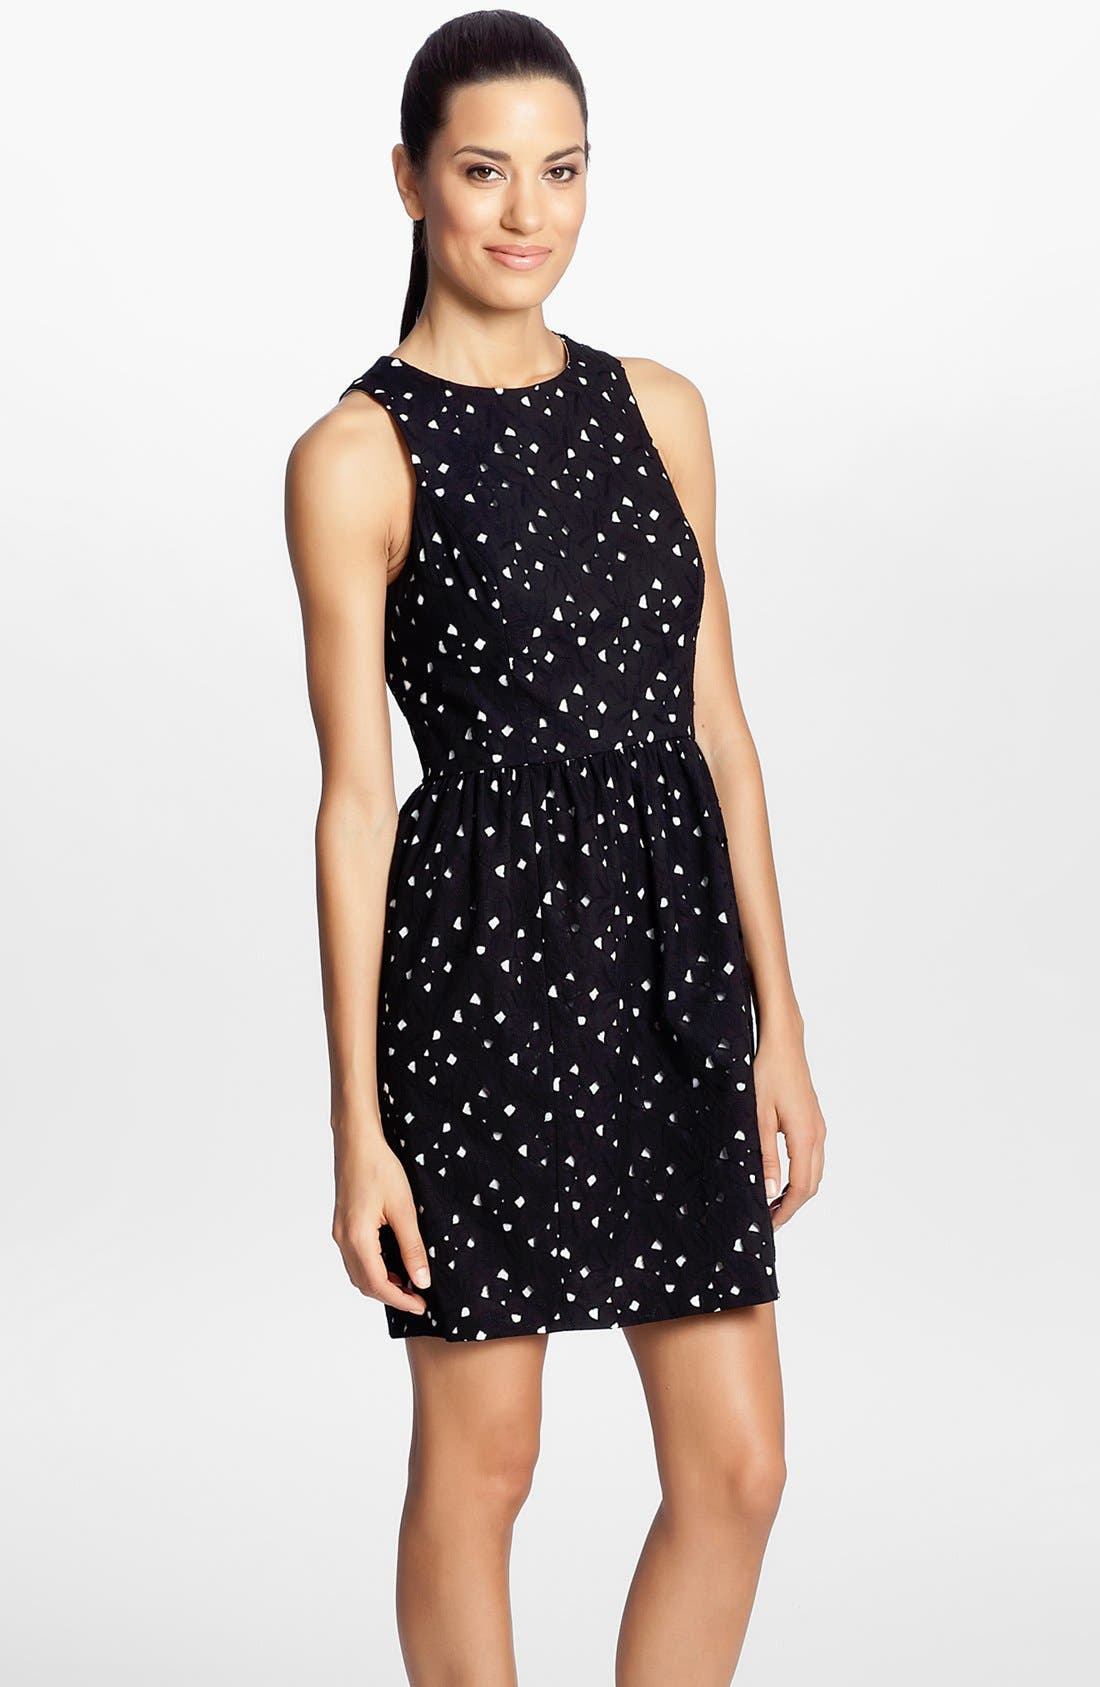 Main Image - Cynthia Steffe 'Peyton' Eyelet Cotton Fit & Flare Dress